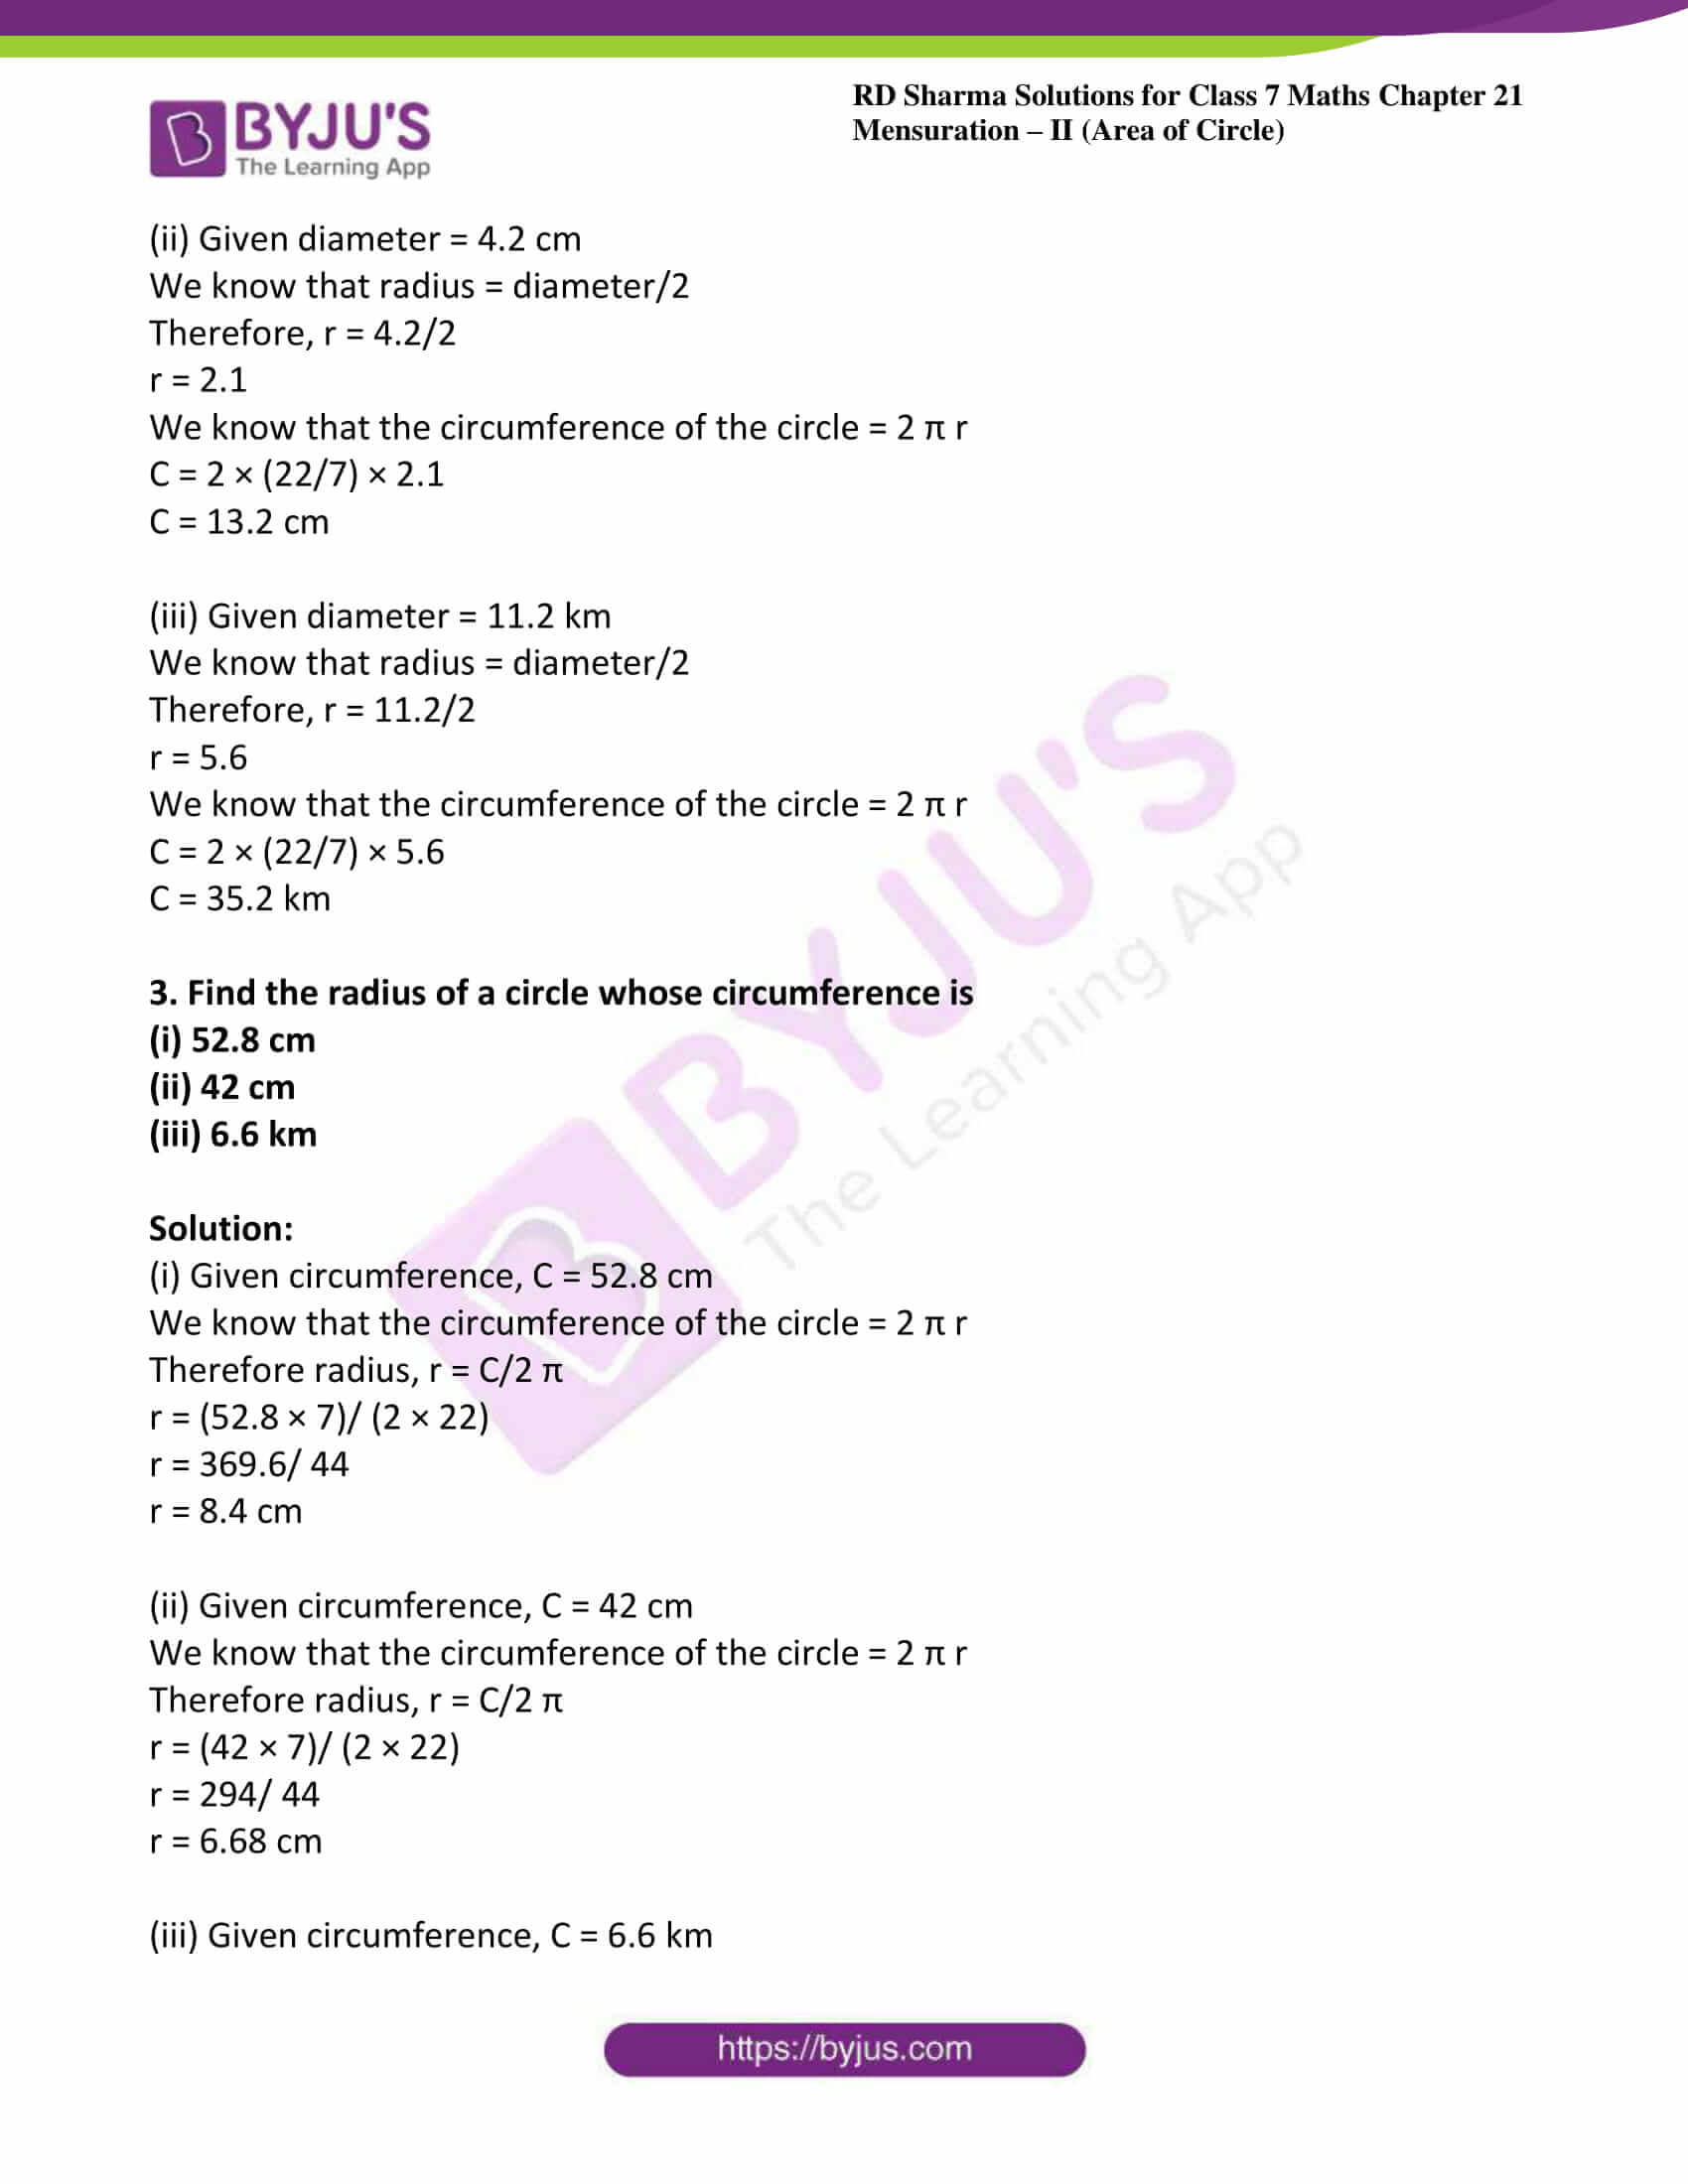 hight resolution of RD Sharma Solutions for Class 7 Maths Chapter 21 - Mensuration - II (Area  of Circle) - Free PDFs are available here